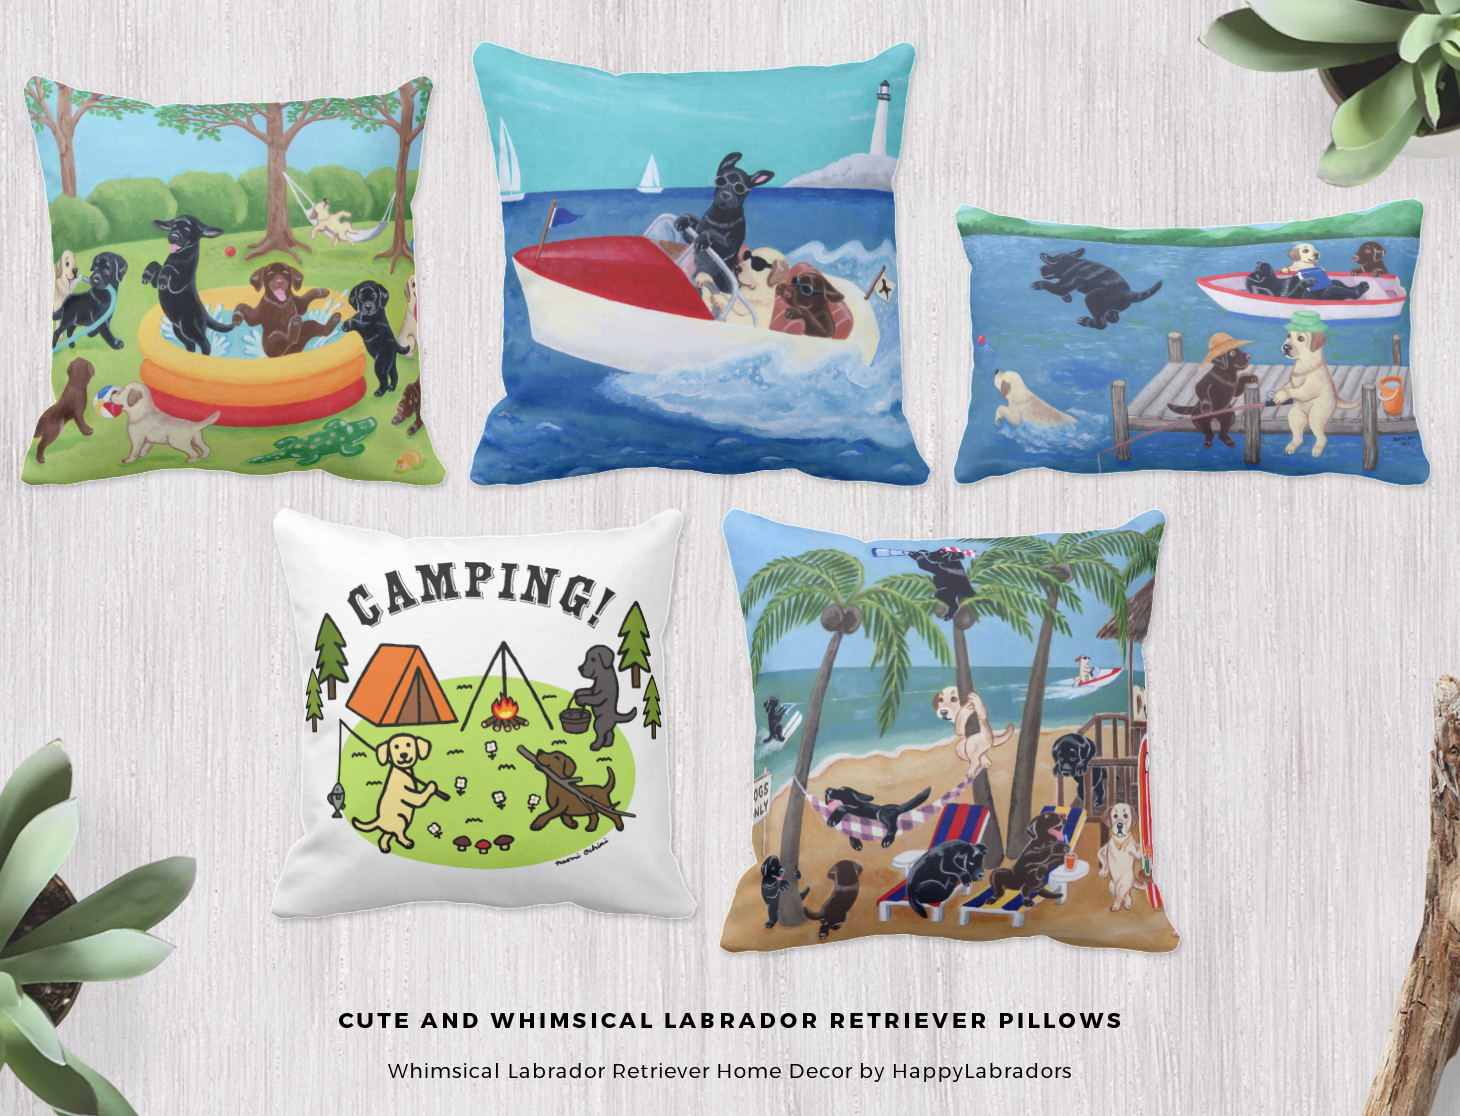 Cute and Whimsical Labrador Retriever Pillows Collection by HappyLabradors @zazzle